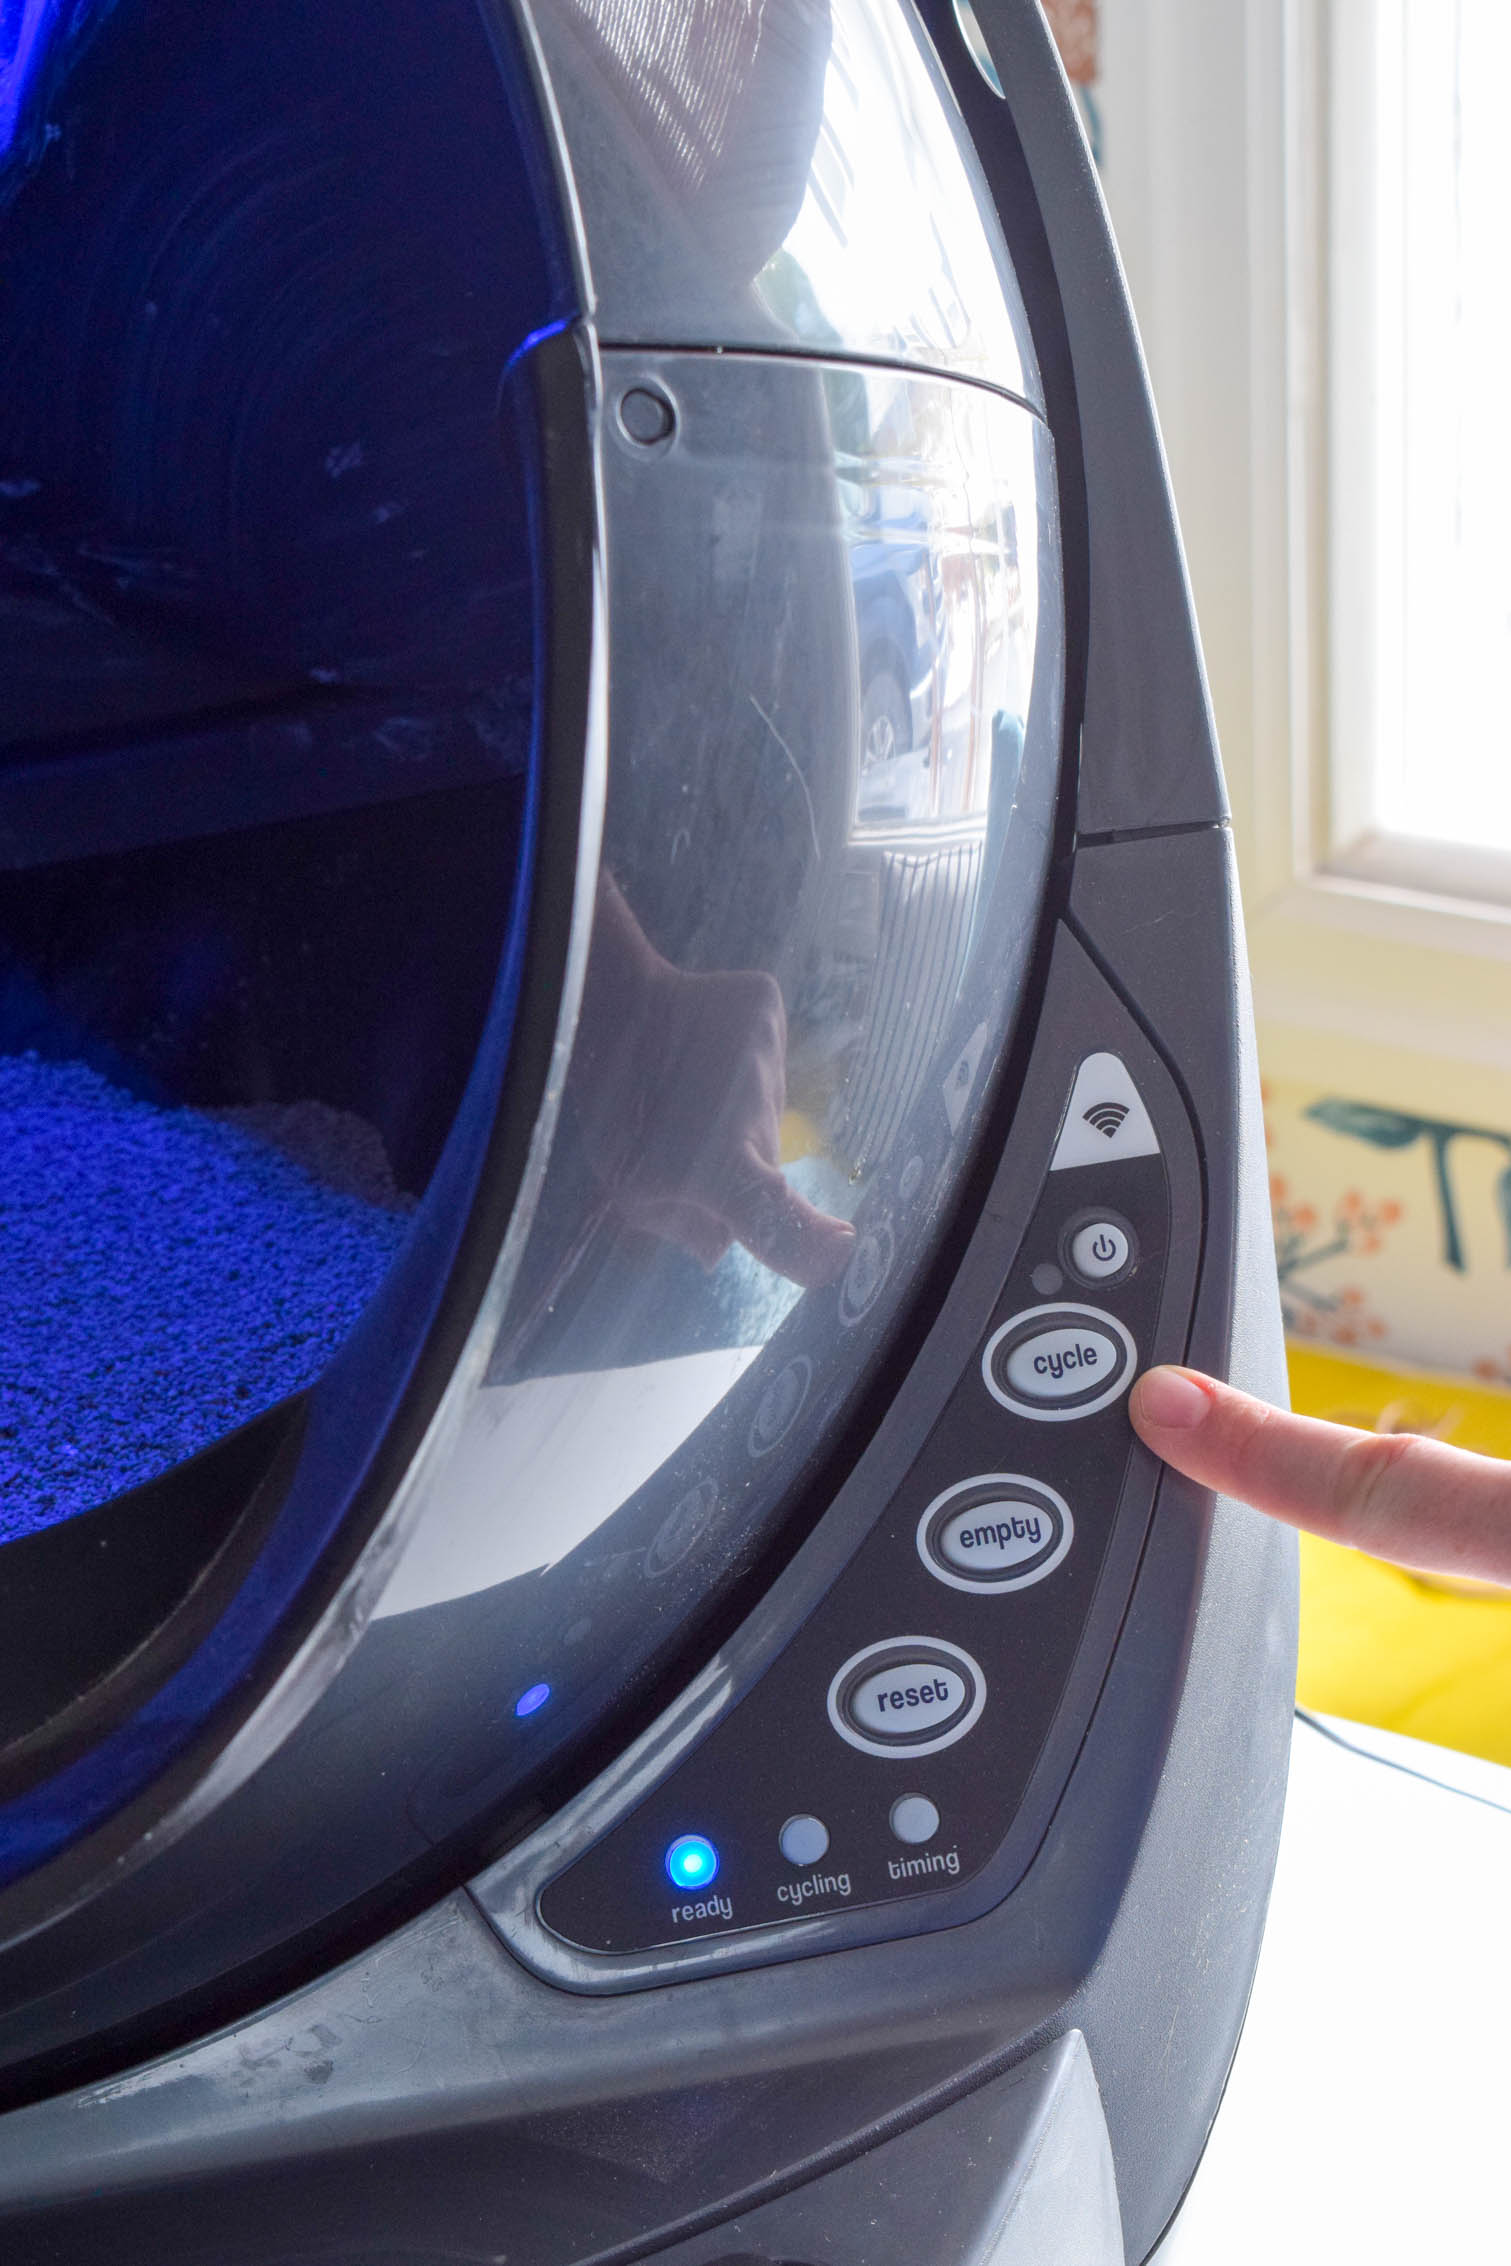 A self-cleaning litter box doesn't have to be a thing of the future. We love our Litter Robot in our multi-cat household, and I'll tell you why! Come read my review